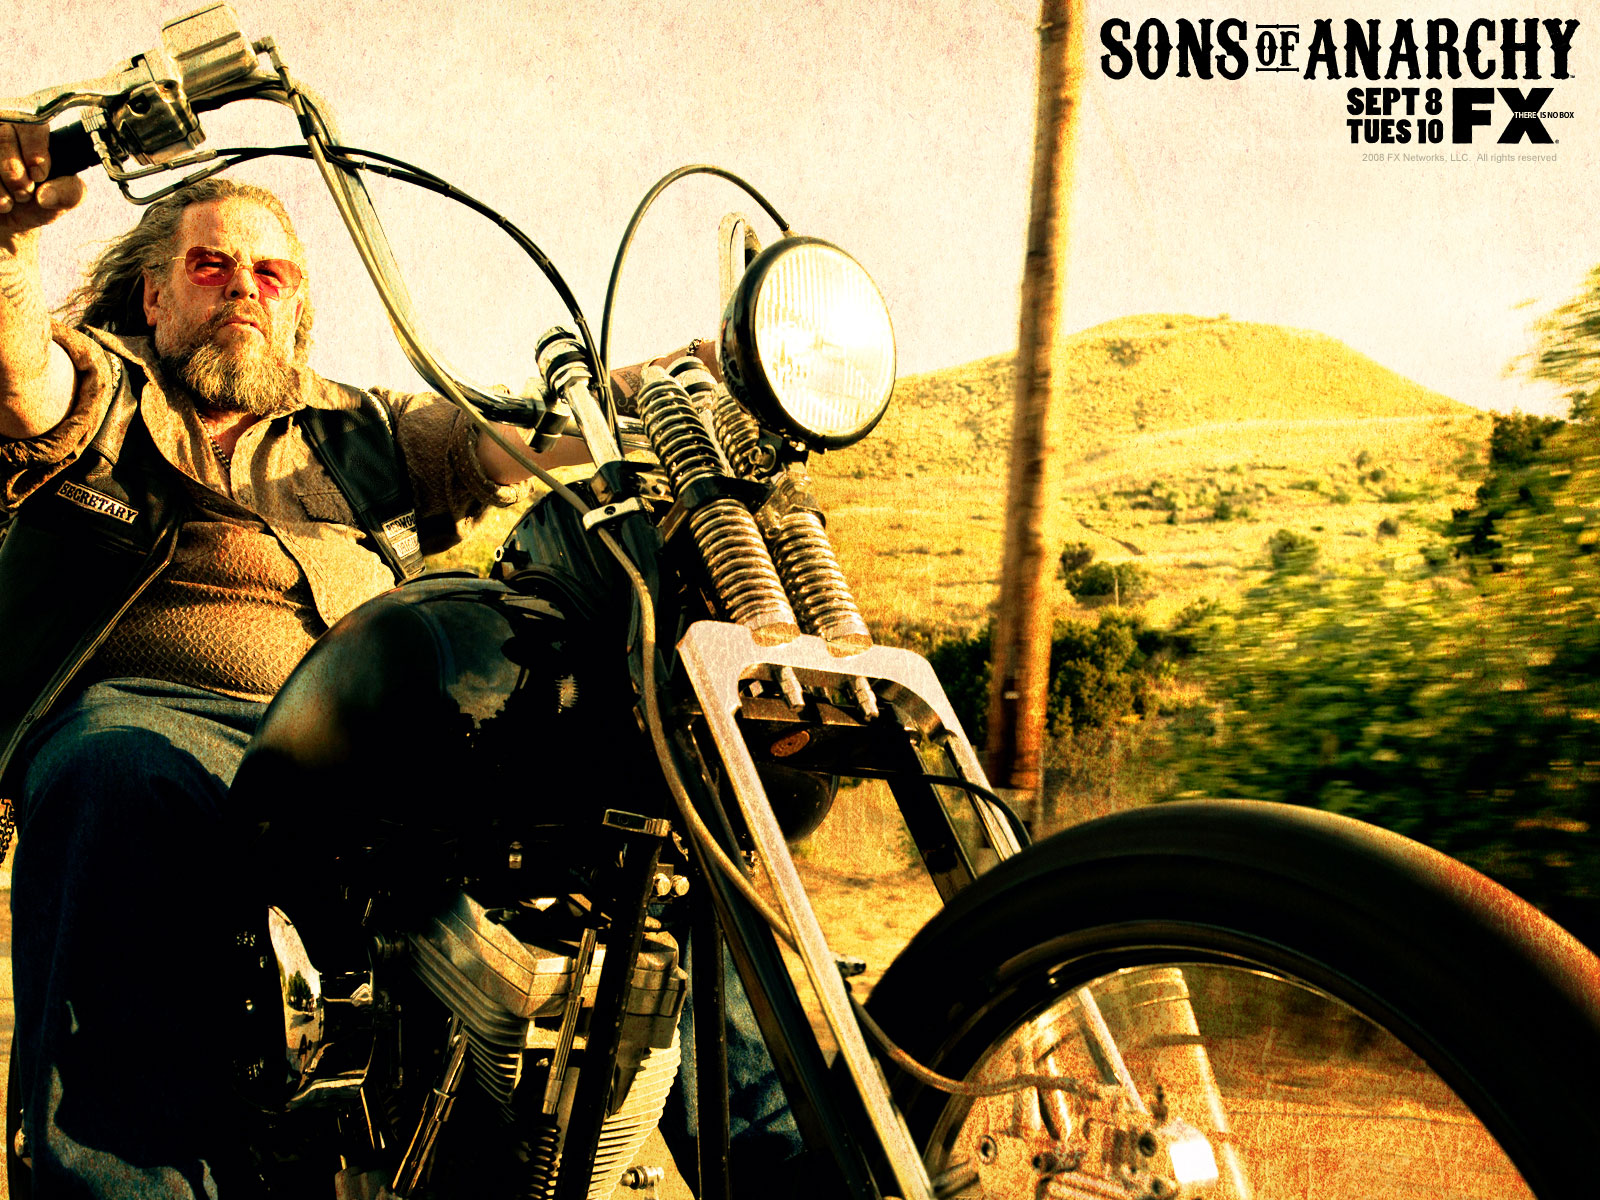 Soa 1600x1200 wallpaper 9 free desktop wallpapers for widescreen sons of anarchy wallpapers voltagebd Choice Image